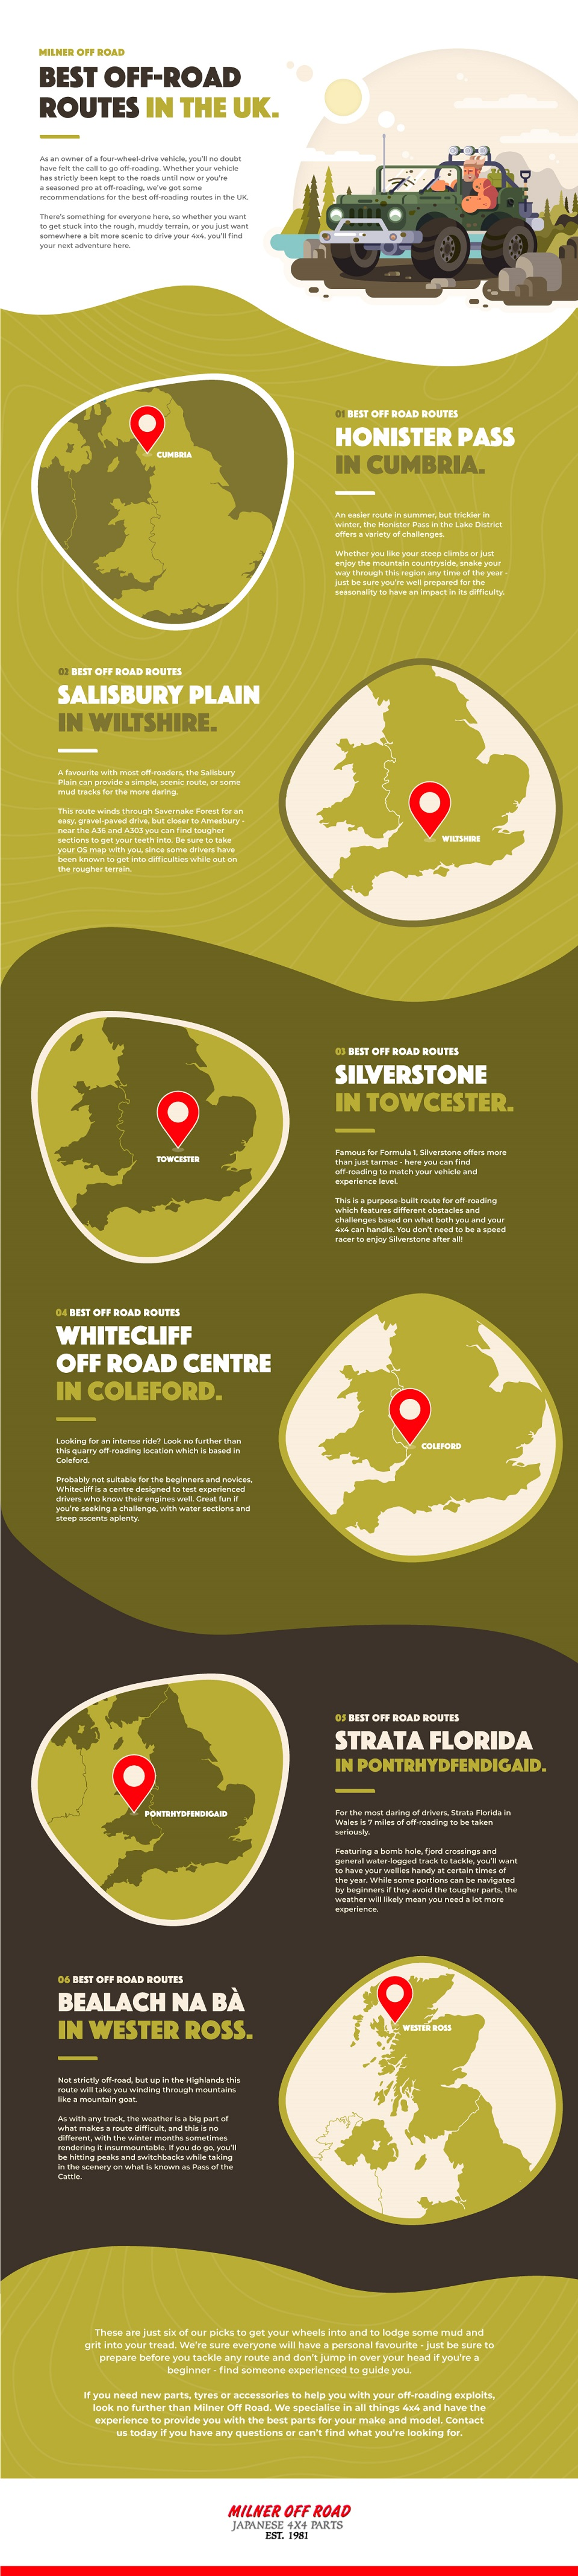 best off road routes in the uk infographic